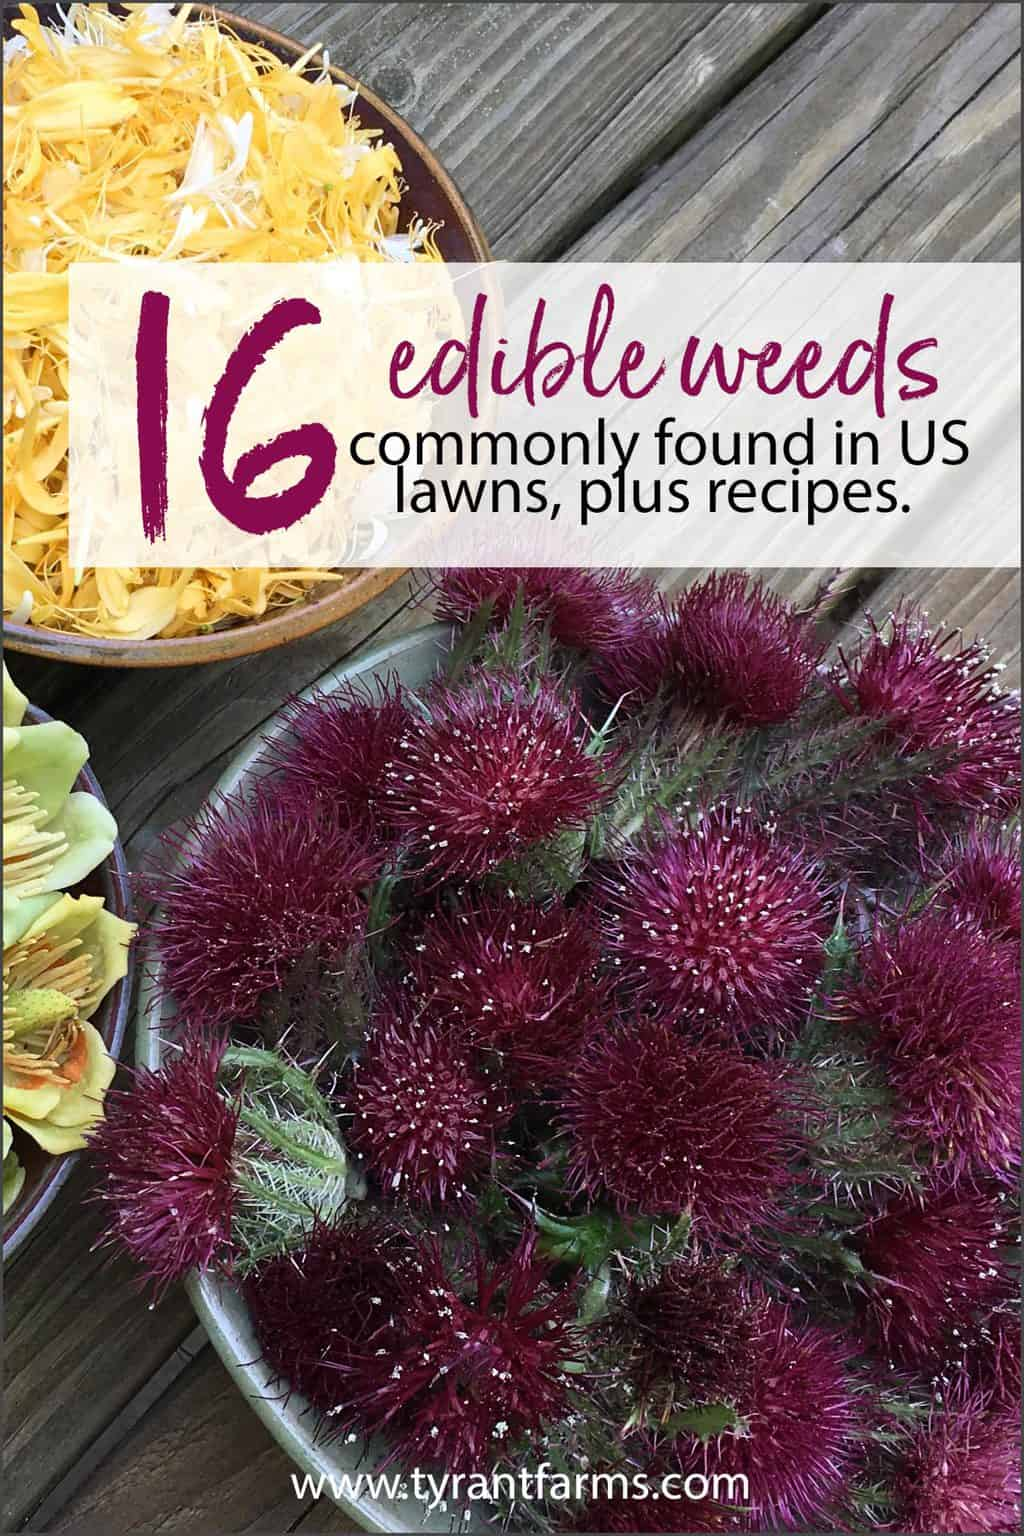 Your yard is probably full of edible weeds throughout the year. Here are 16 common edible weeds found in US lawns, plus recipes for how to use them. #tyrantfarms #eattheweeds #foraging